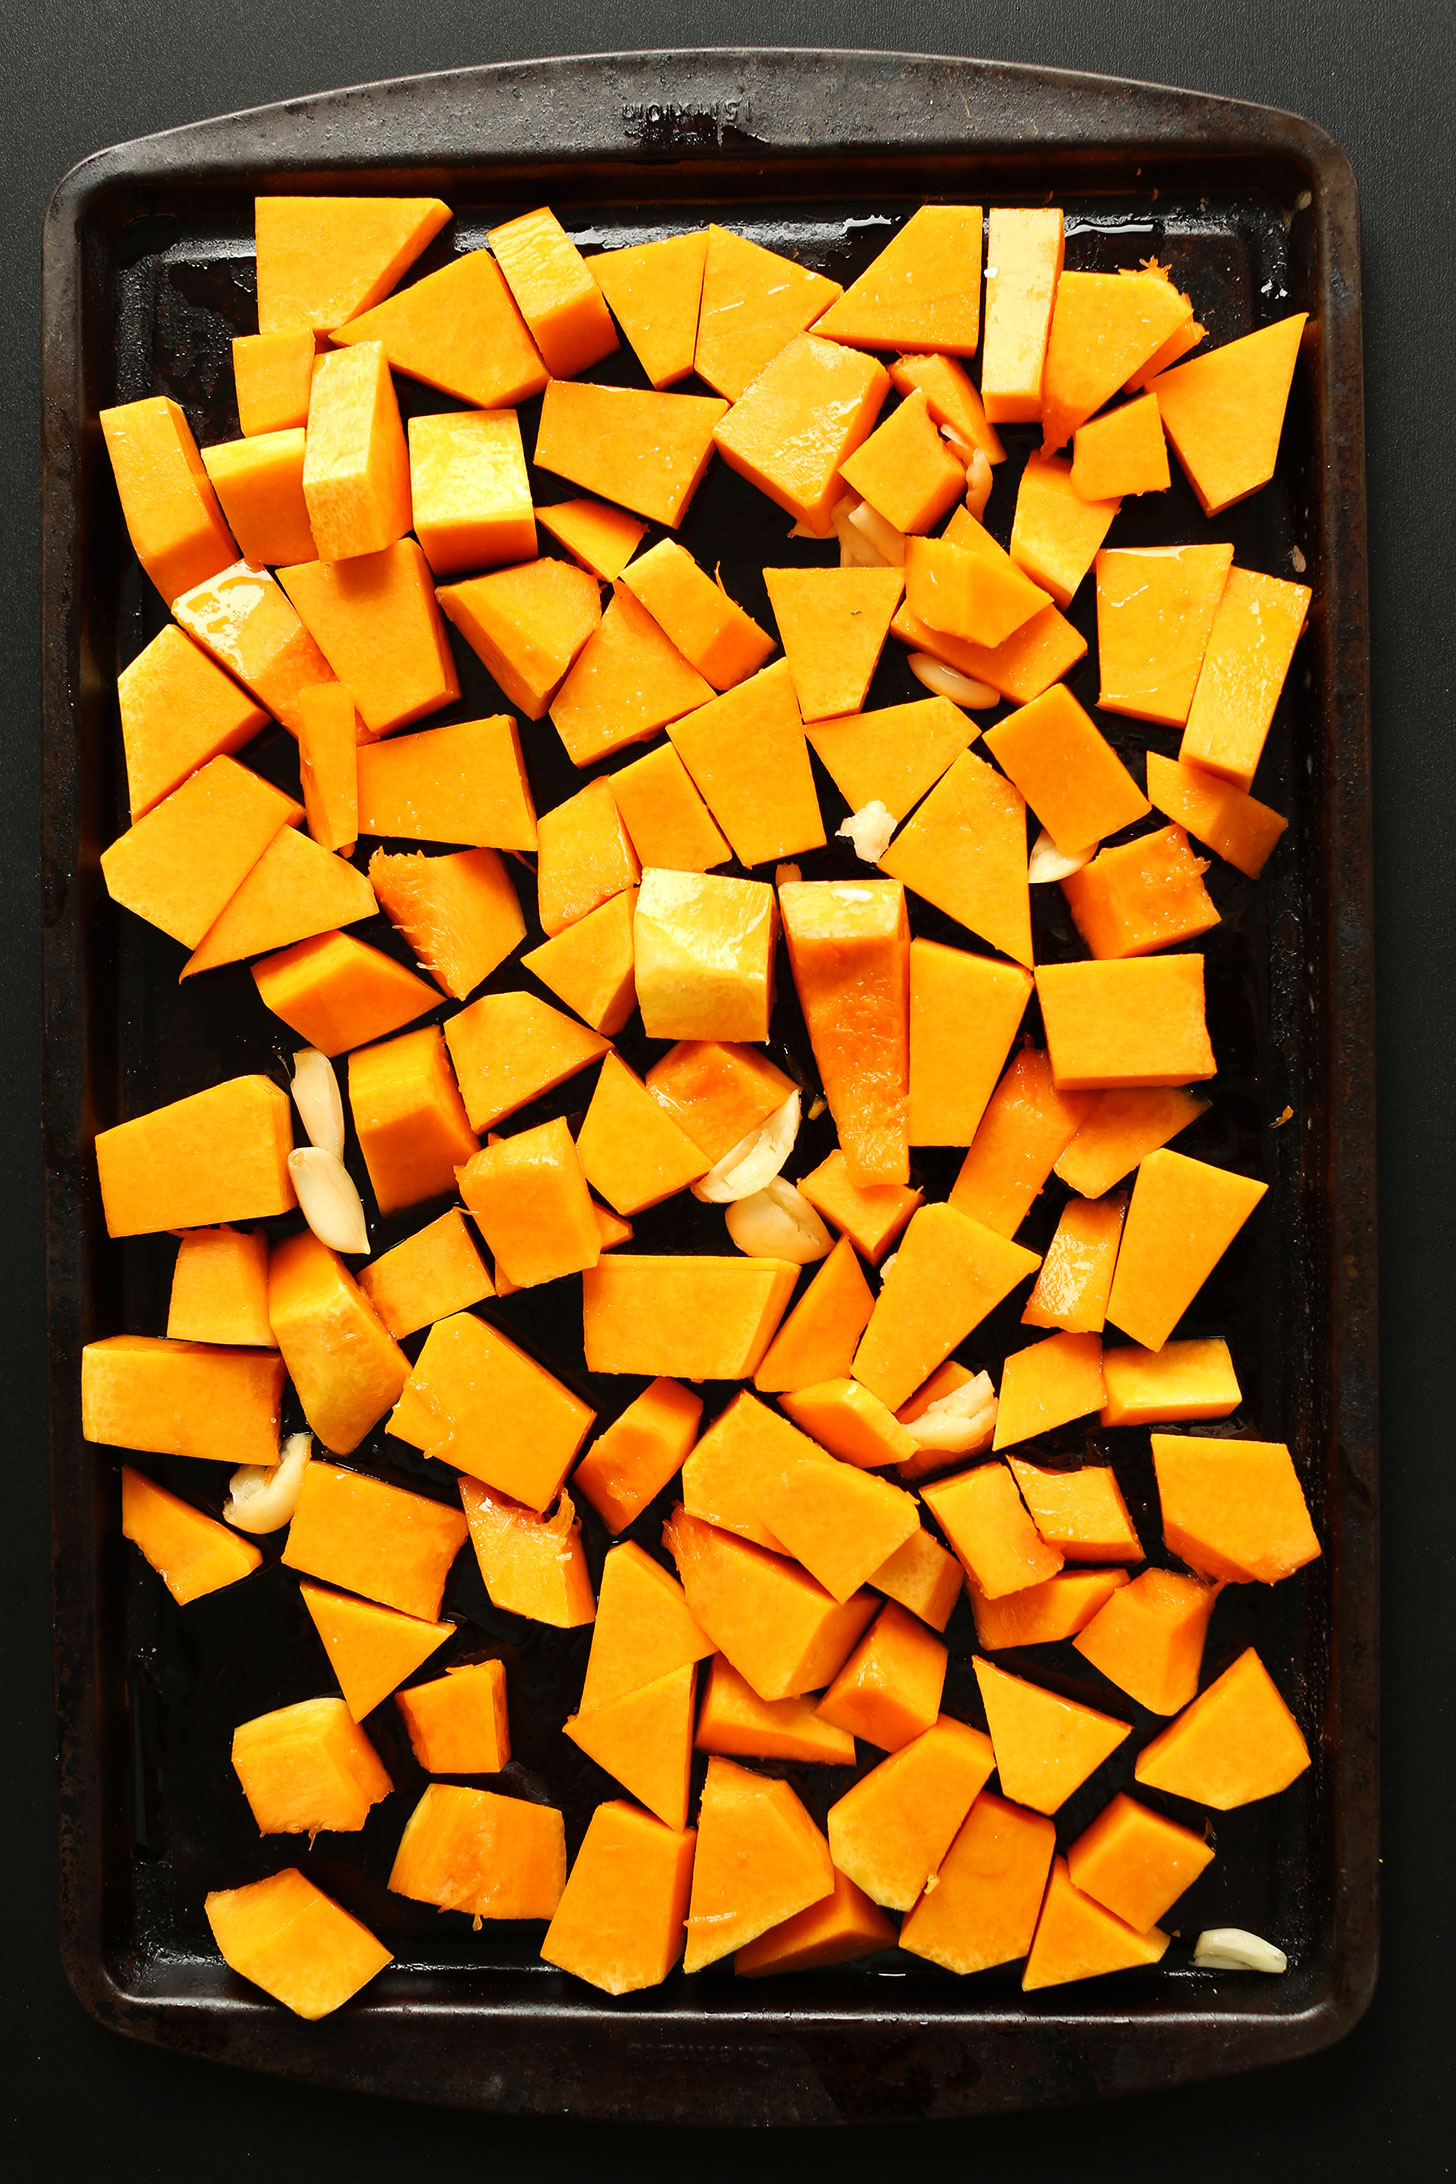 Roasting butternut squash to make homemade vegan pizza sauce